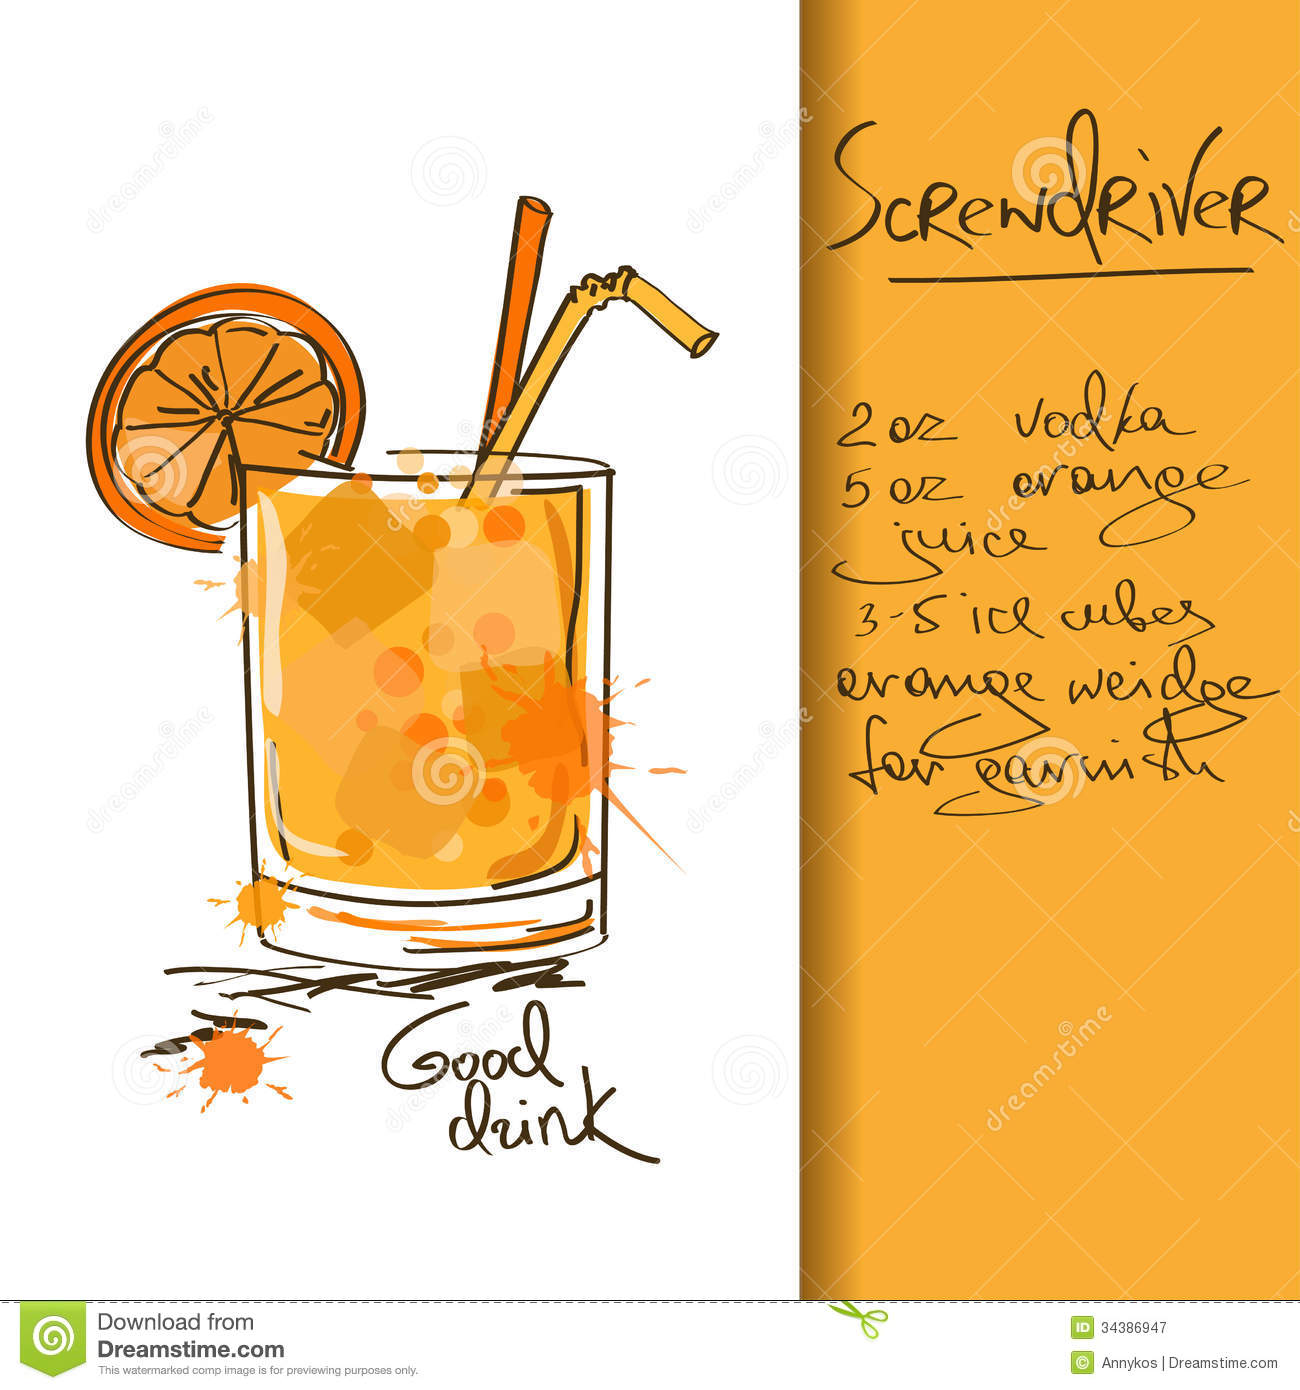 圖片標題: … with hand drawn Screwdriver cocktail